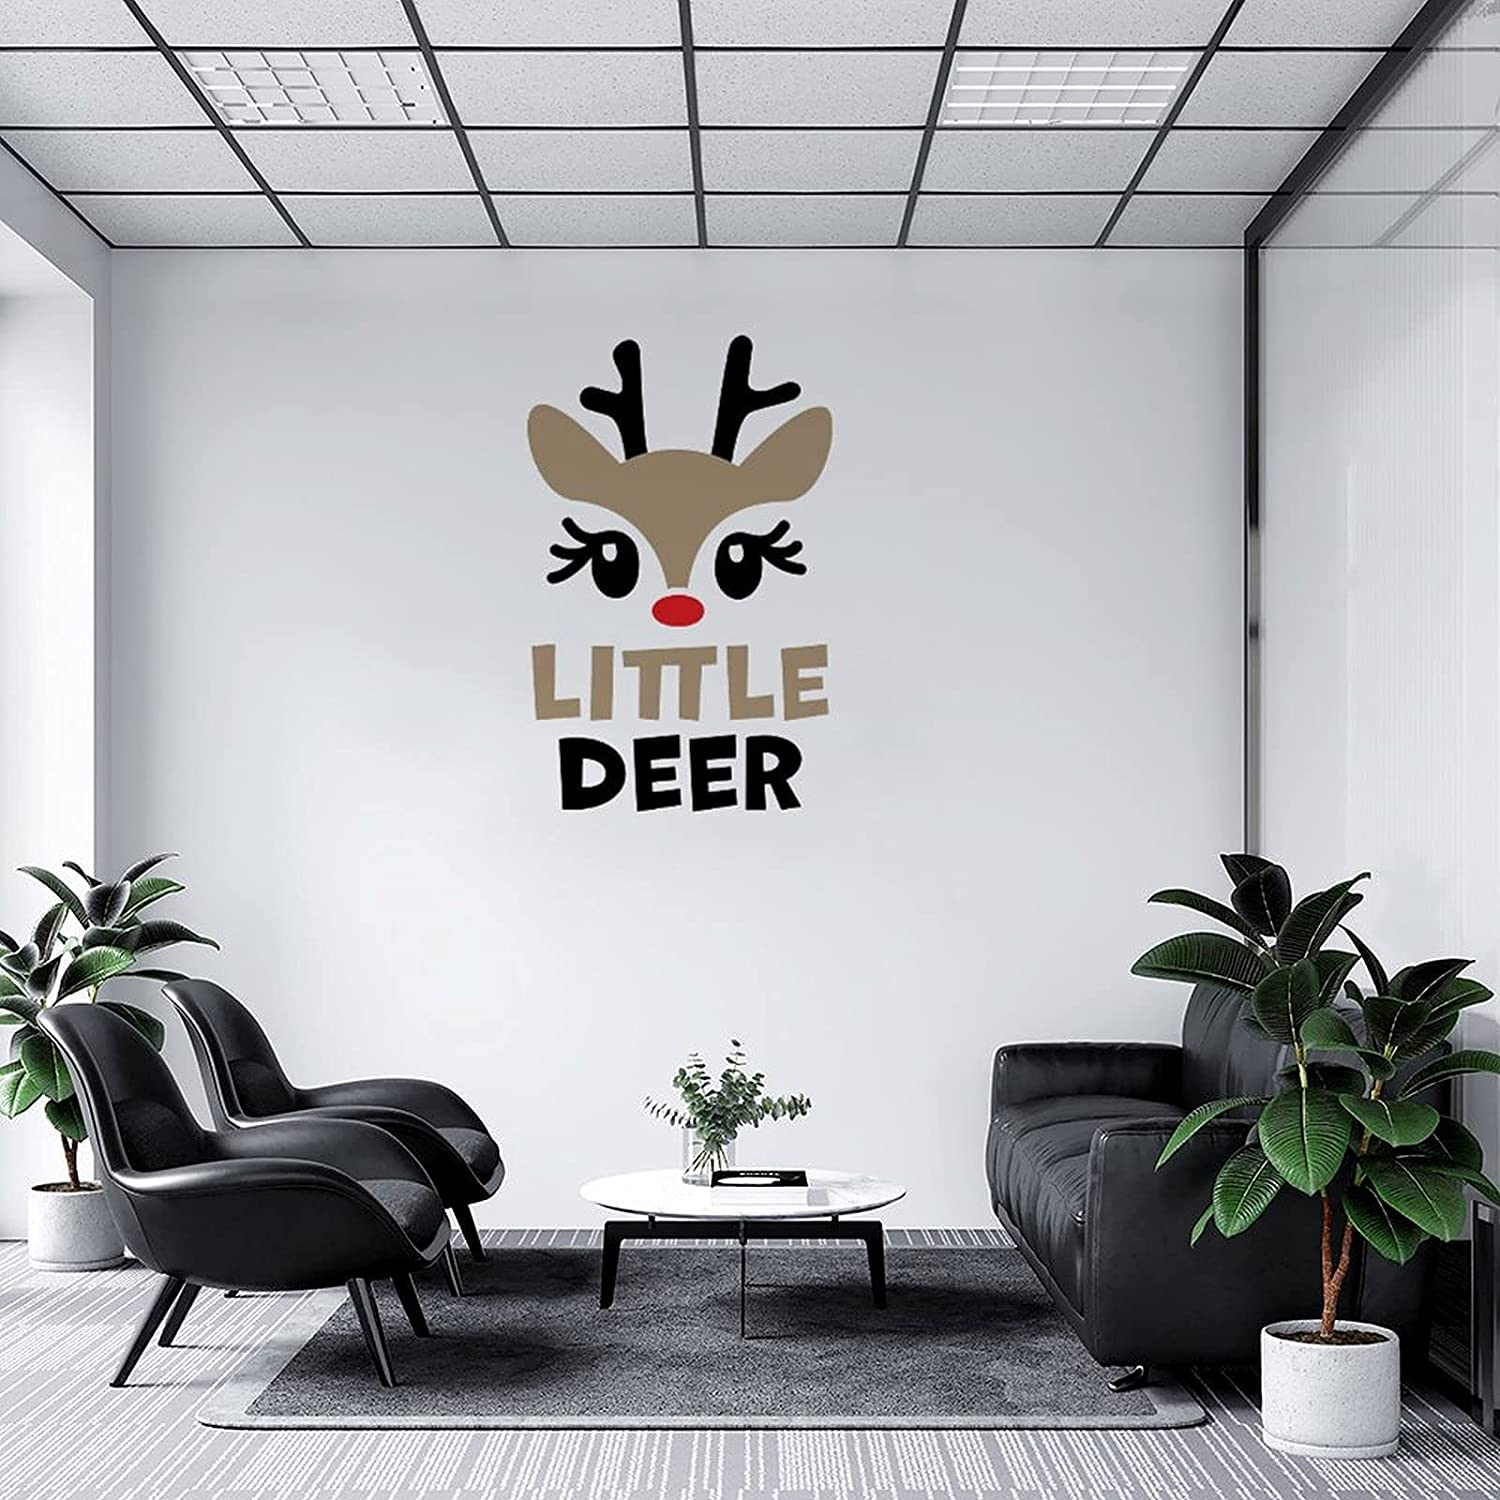 Wall Decal Charlotte Mall Little Deer Decor Classroom New mail order Bedroom Playroo for